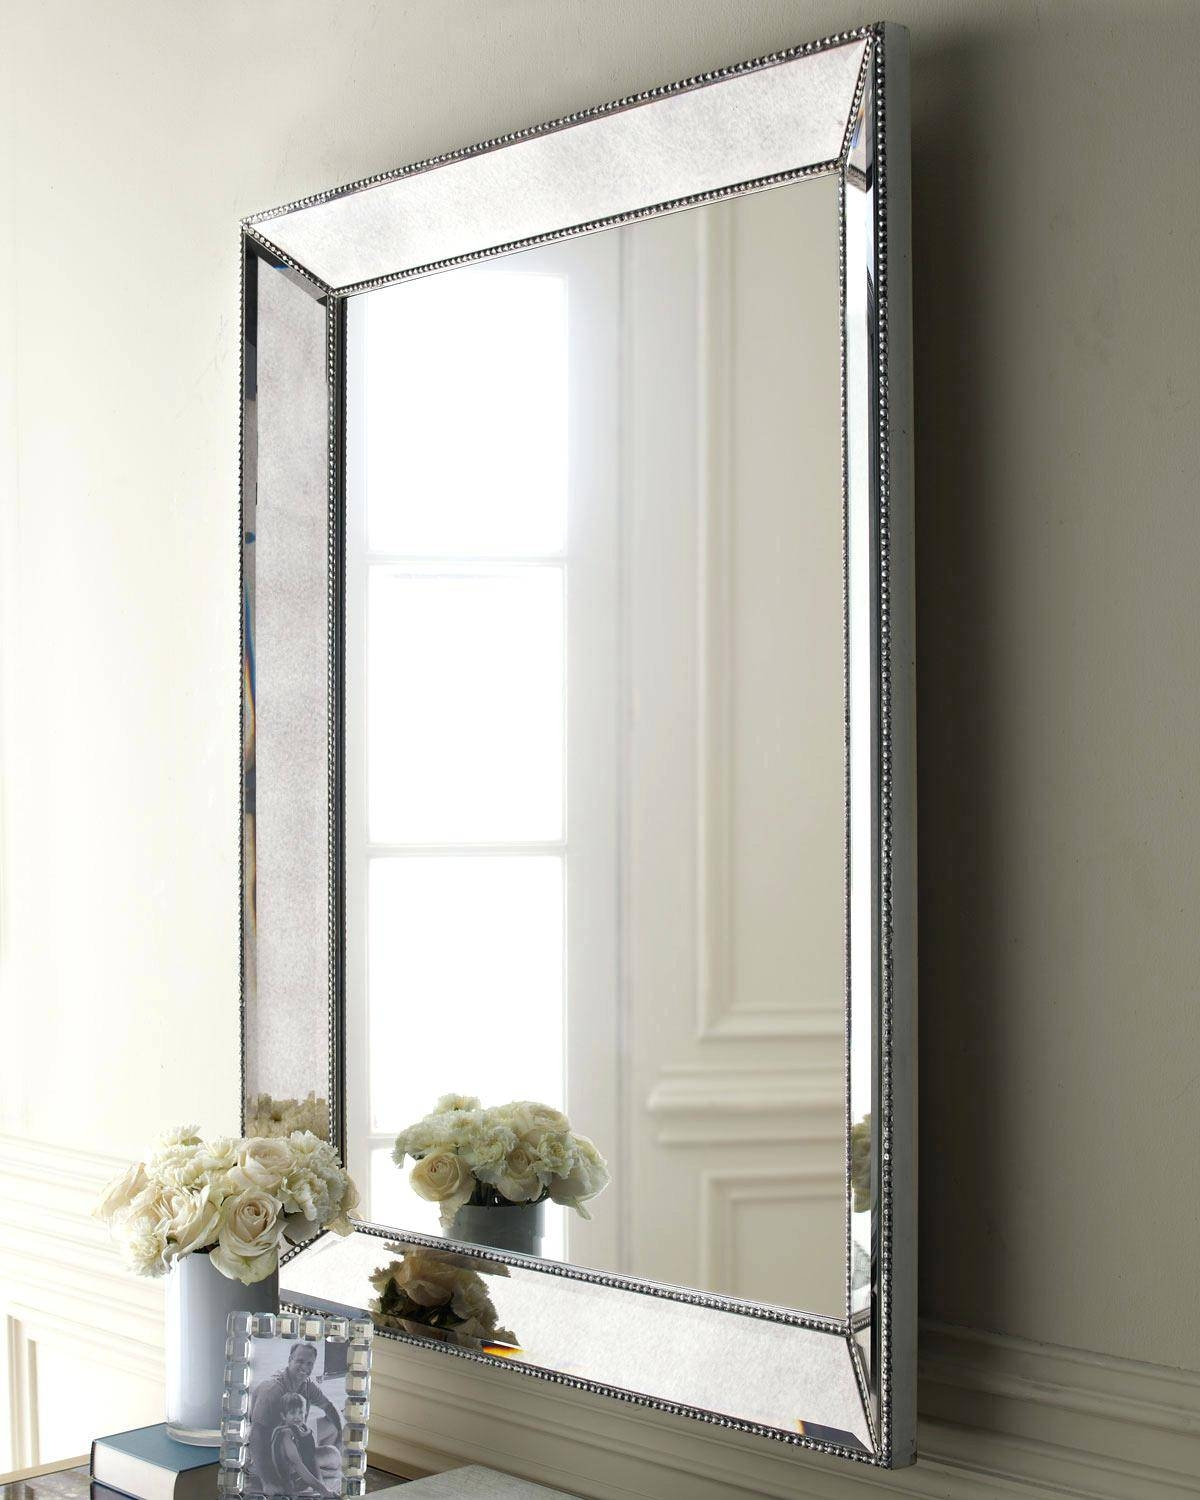 The best frameless large wall mirrors mirrorlarge round frameless wall mirror large shopwiz intended for frameless large wall mirrors image amipublicfo Image collections